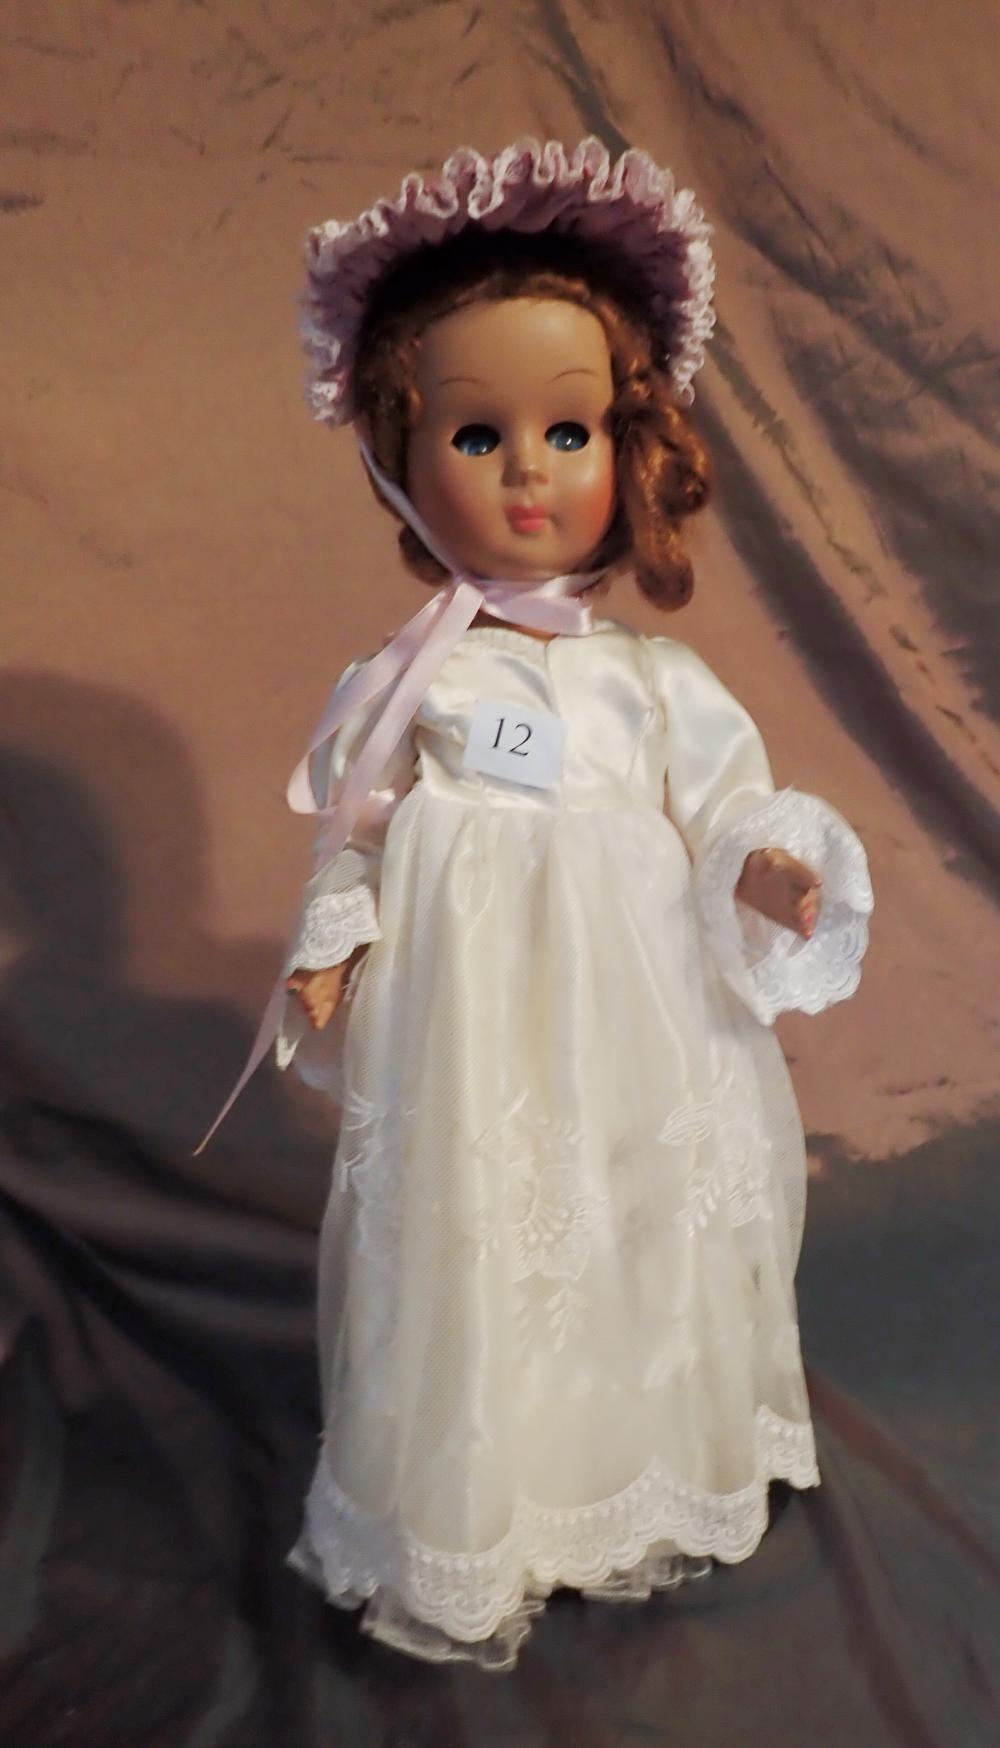 "17"" VINTAGE ITALIAN 1950S DOLL MARKED ATHENA PIACENZA TYPE 40 WITH VOICE BOX TO THE FRONT IN WEDDING DRESS AND HAT, 2 MARKS ON NECK"